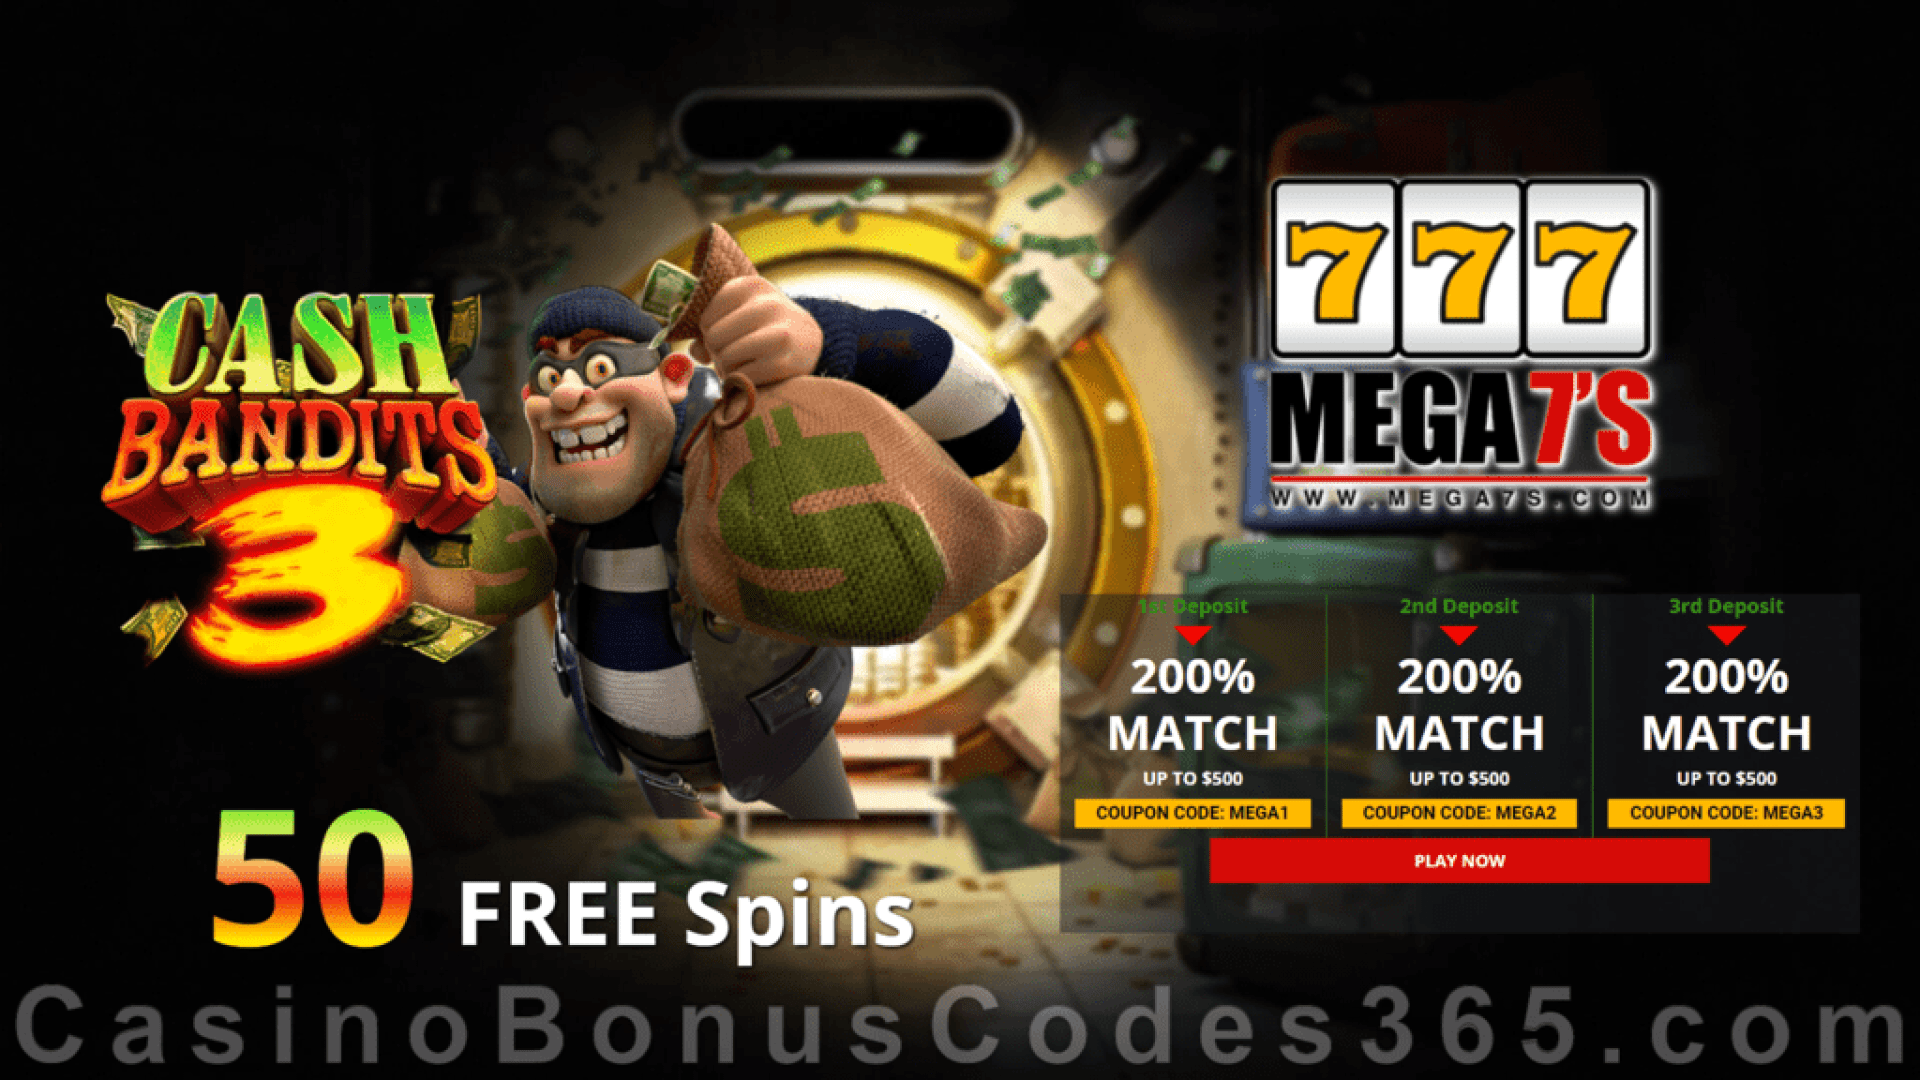 Mega7s Casino 50 FREE Spins New RTG Game Cash Bandits 3 Offer